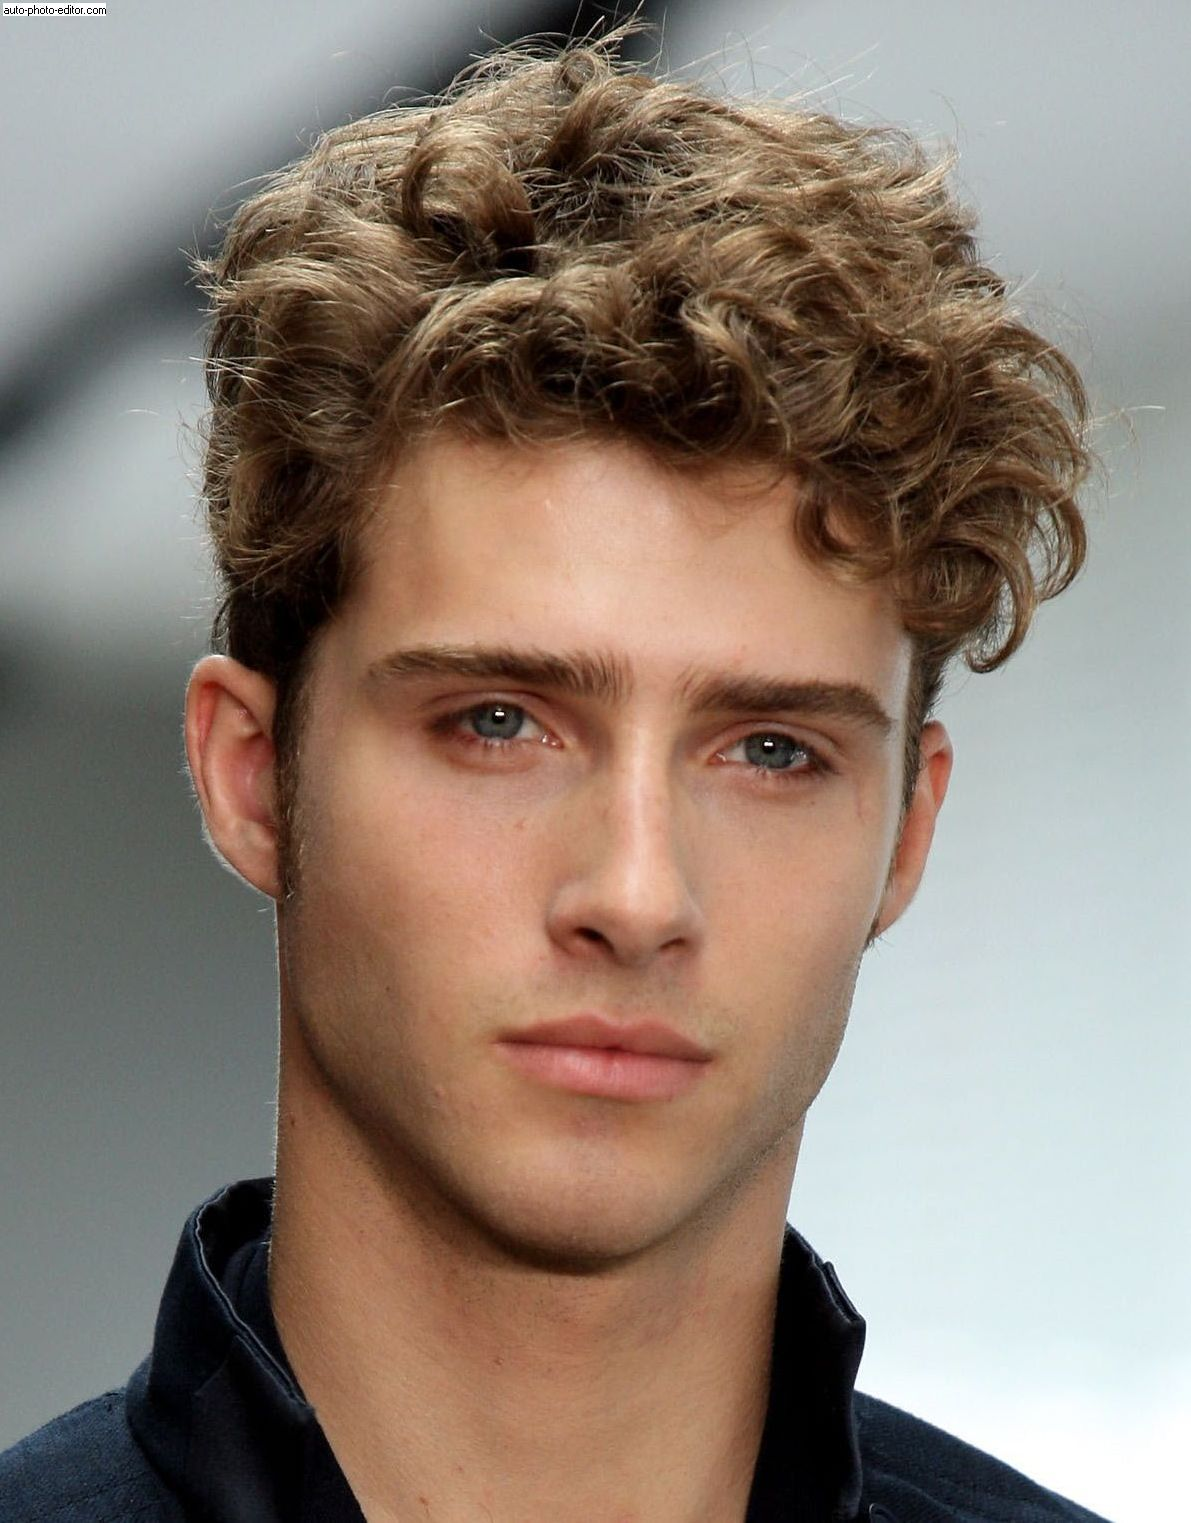 Curly Hairstyles For Men Fave HairStyles Curly hair